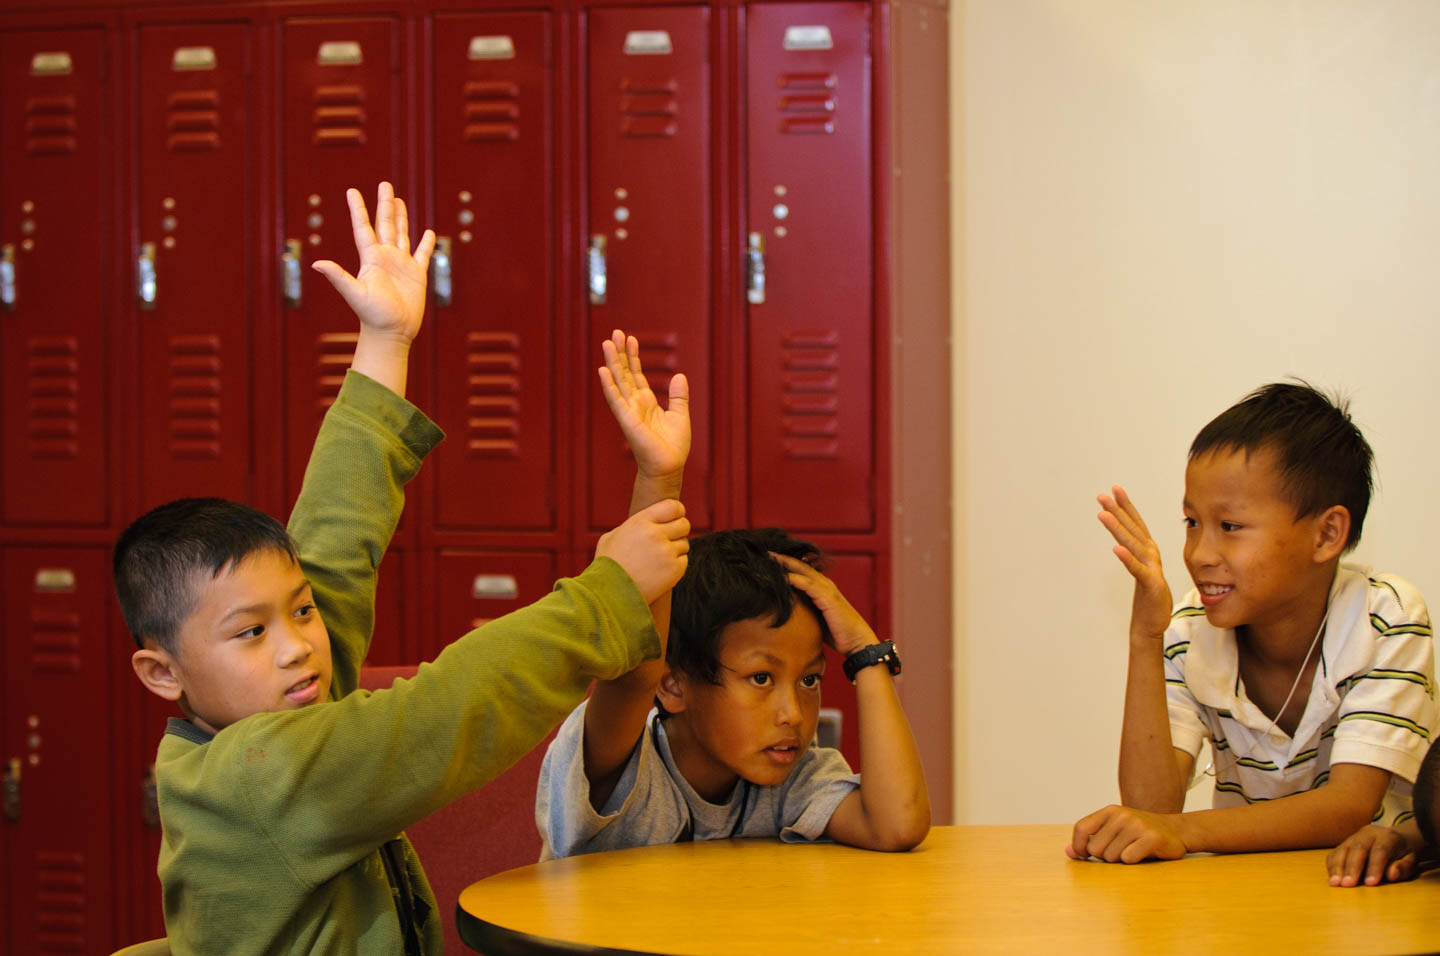 Raising their hands for learning